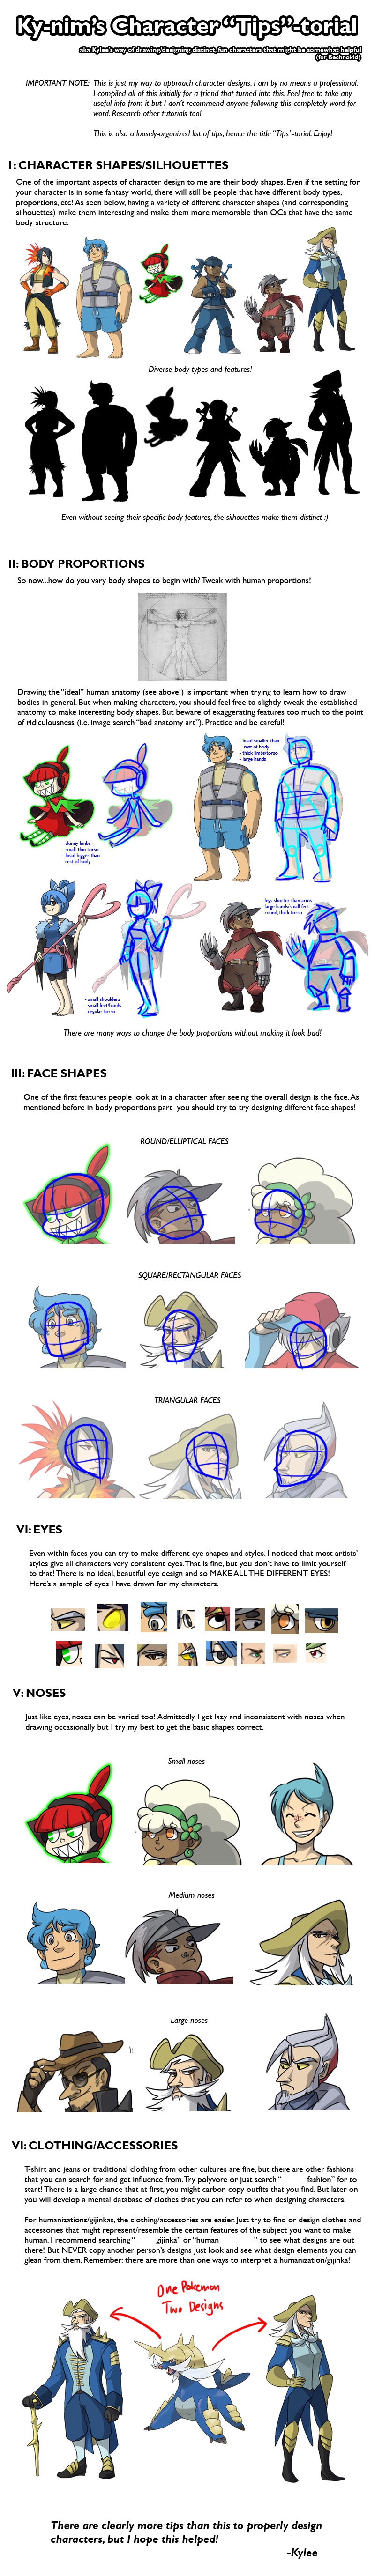 Tutorial For Character Design : Tutorial character design by ky nim on deviantart